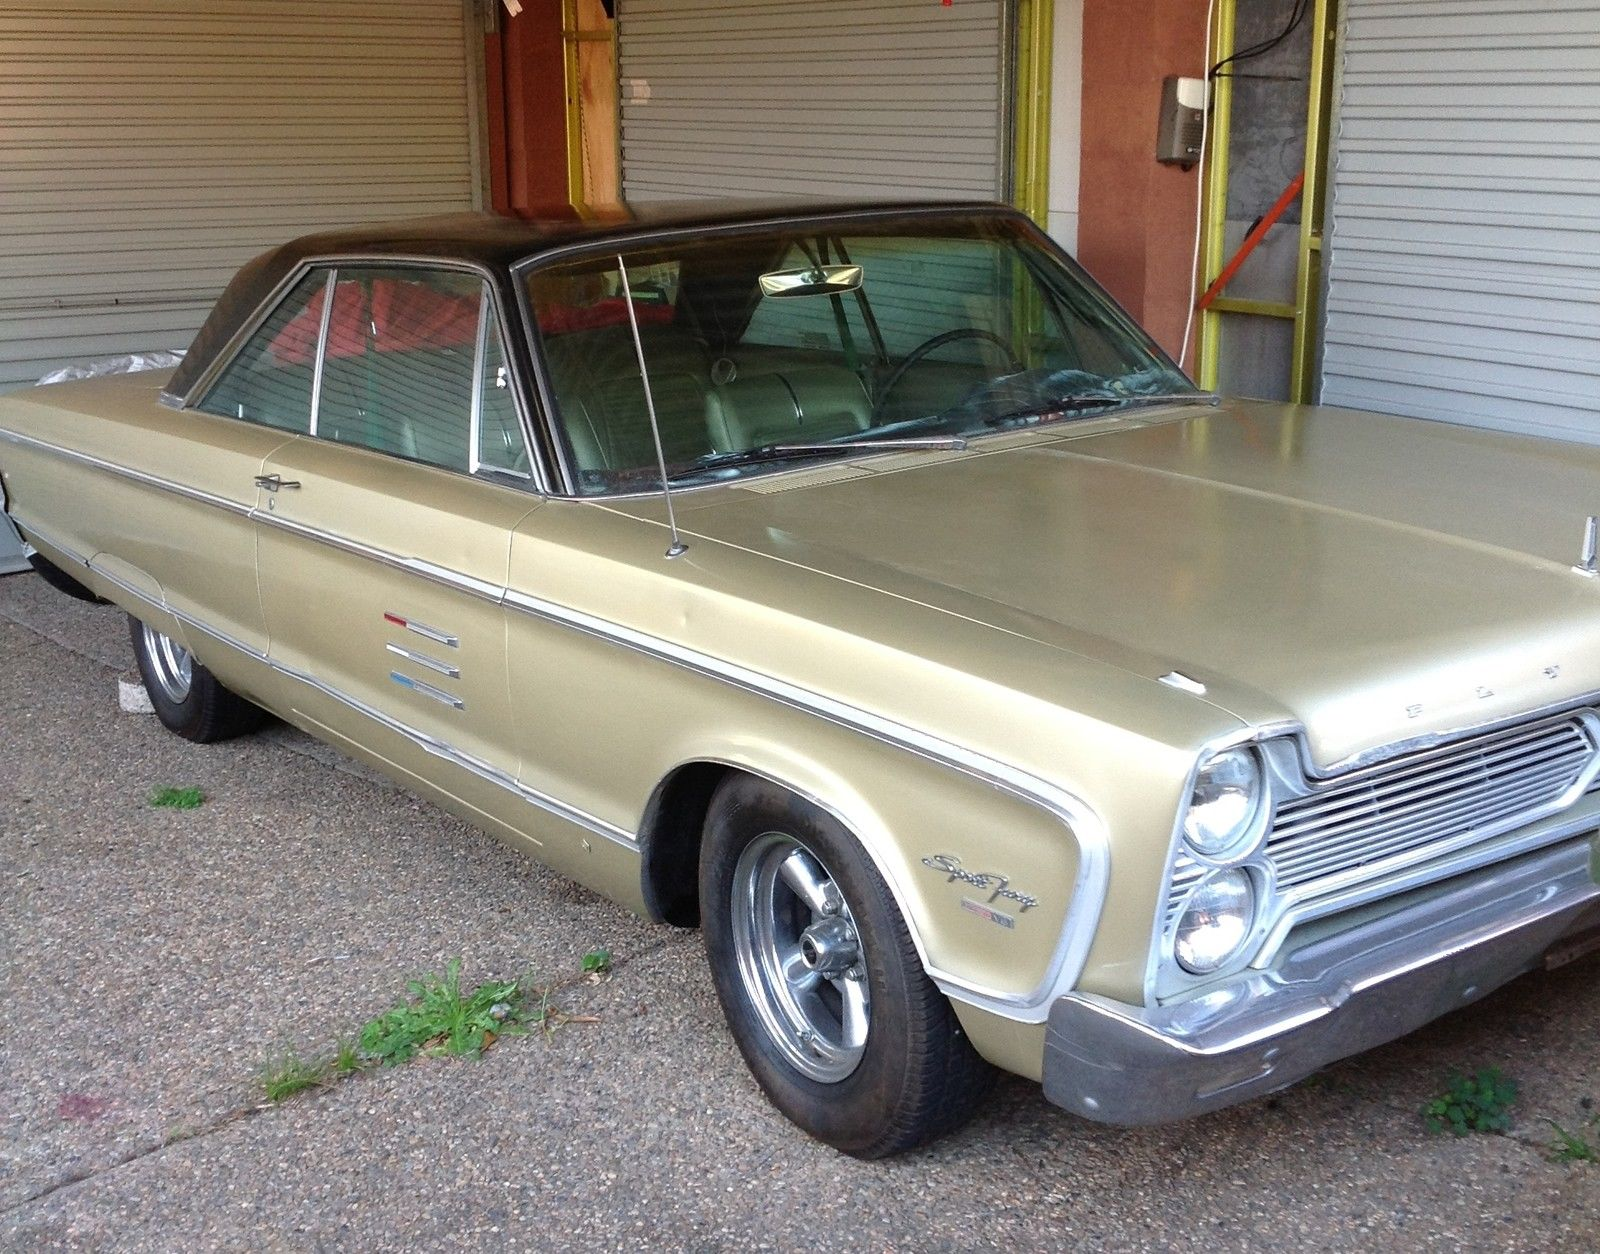 1966 PLYMOUTH FURY SPORT COUPE V8 383